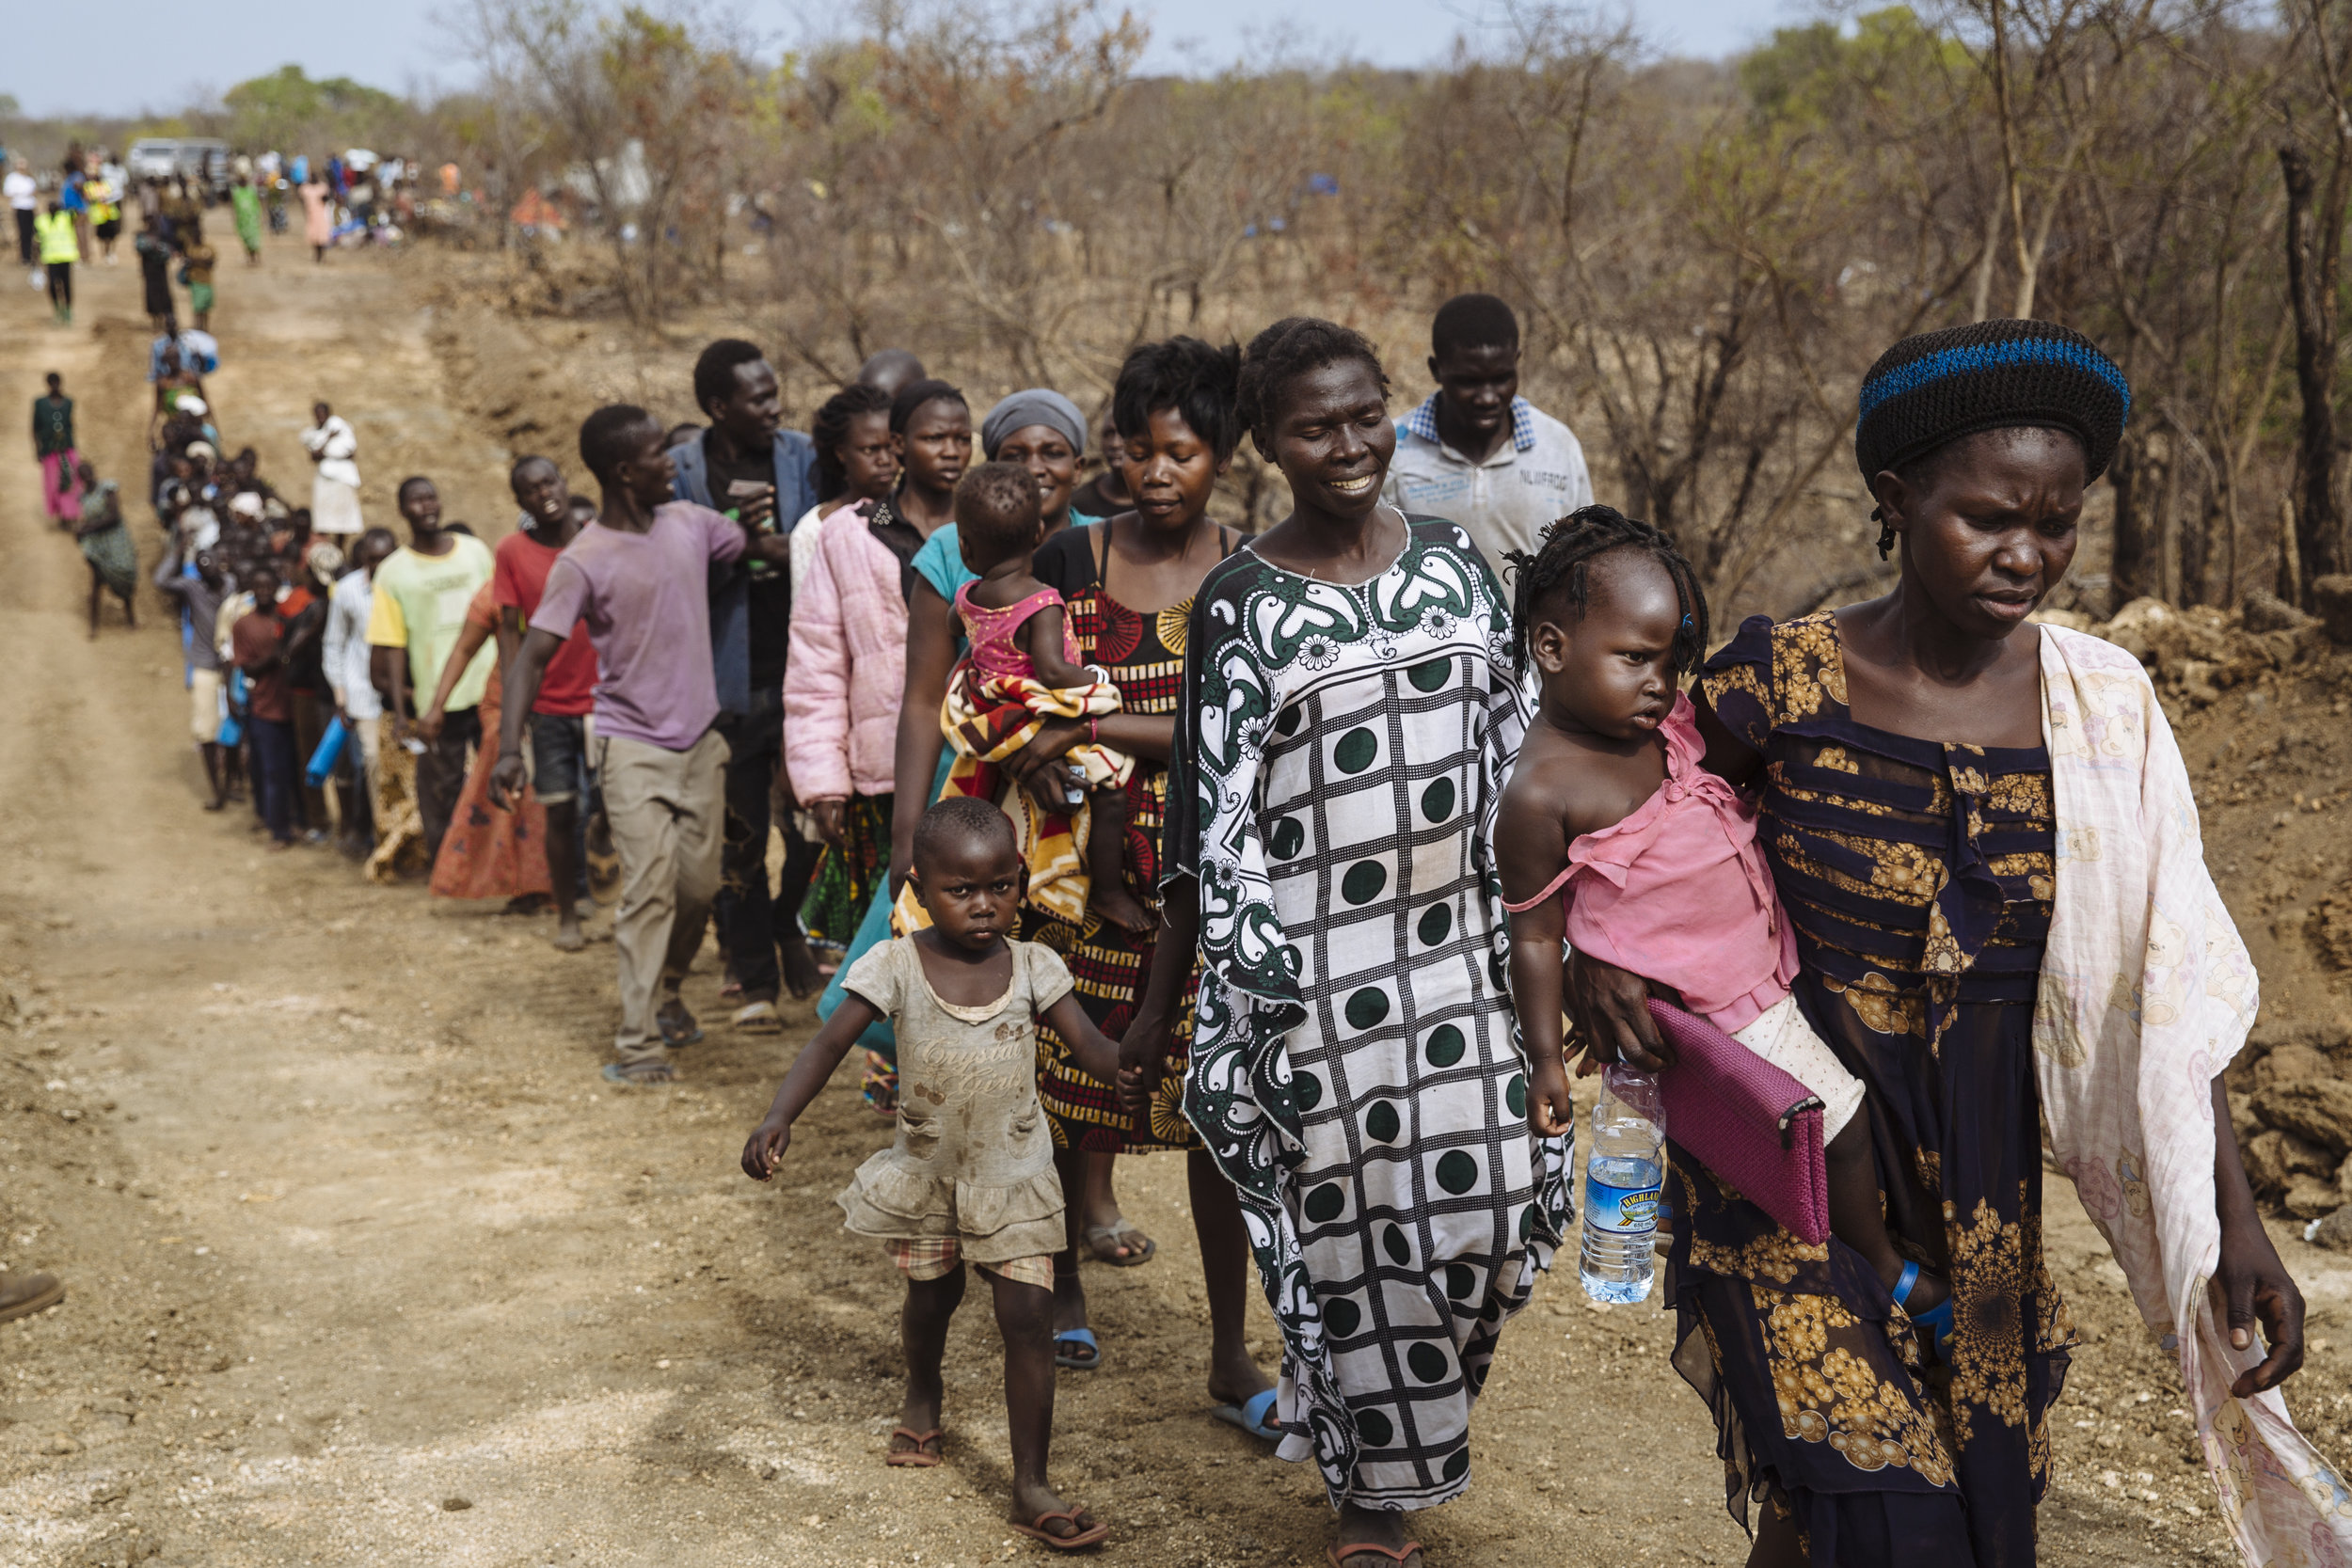 South Sudanese refugee Opani Lilias, 28, right, carries her only child Brenda, 21 months, as they follow a plot allocator along a dirt road at the recently established Imvepi settlement, Arua District, Northern Region, Uganda.